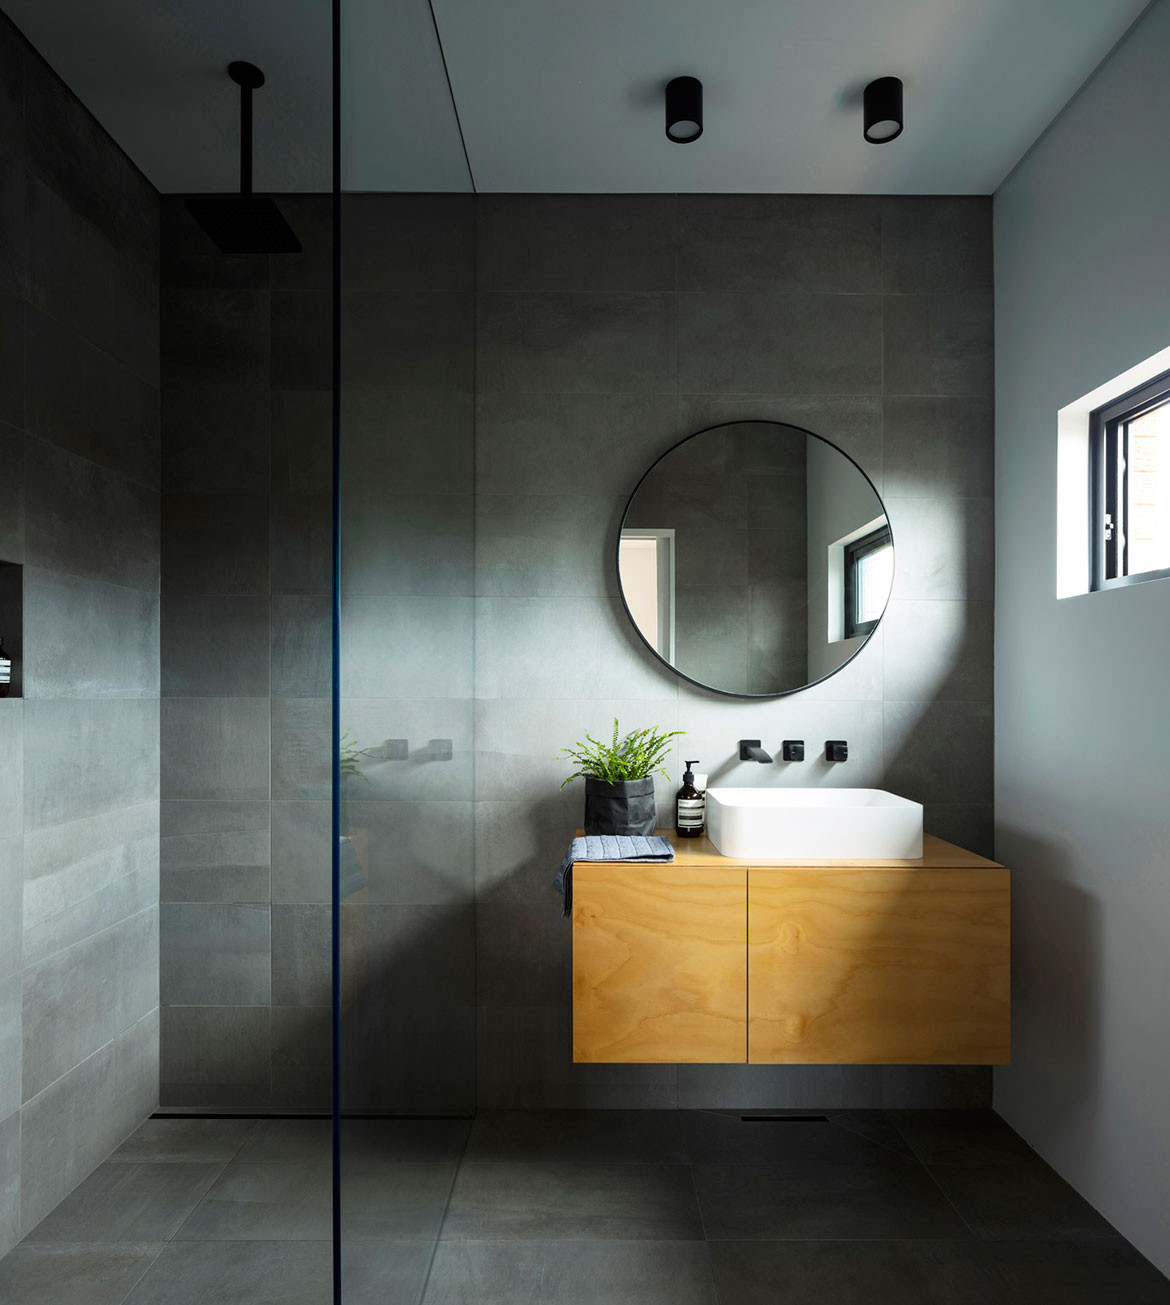 Binary House Christopher Polly Architect cc Brett Boardman shower and vanity